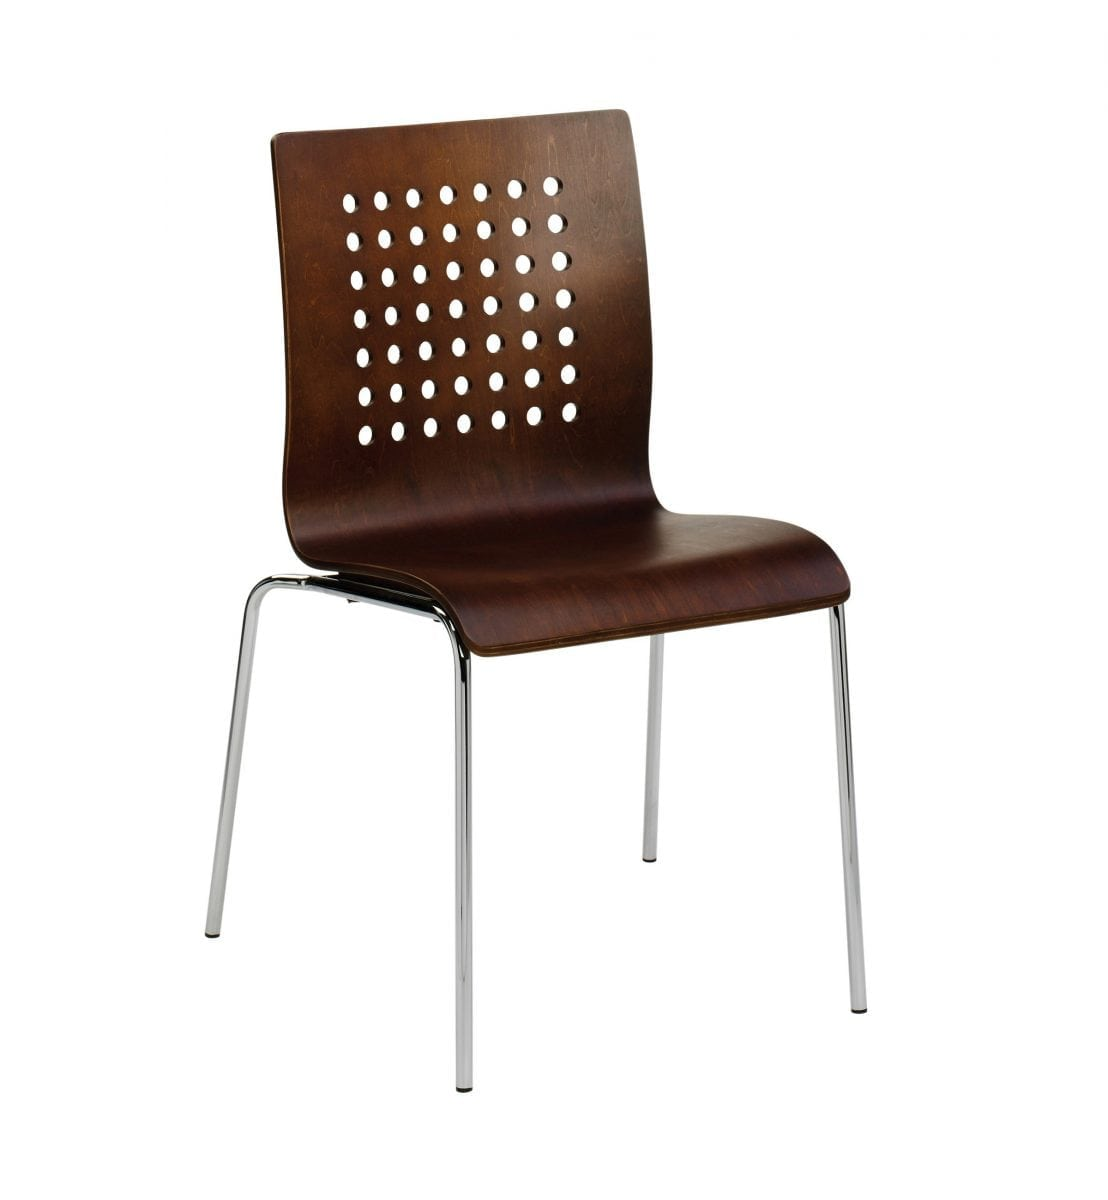 At5w Modern Wenge Wooden Stackable Chair For Cafes Bars And